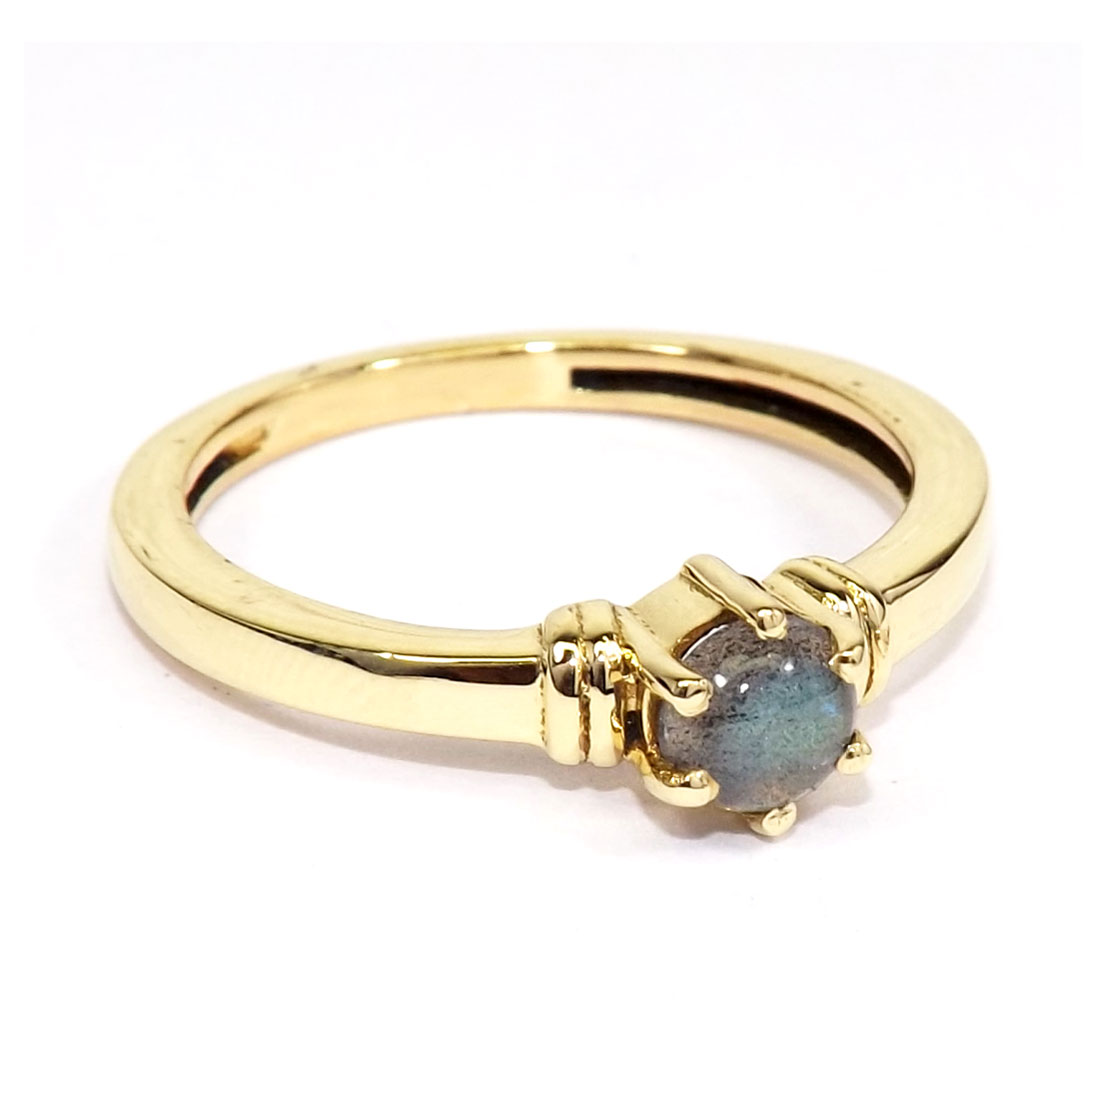 Labradorite Cab A - CBR981-Wholesale Brass Gemstone Designer Fashion Casting Rings